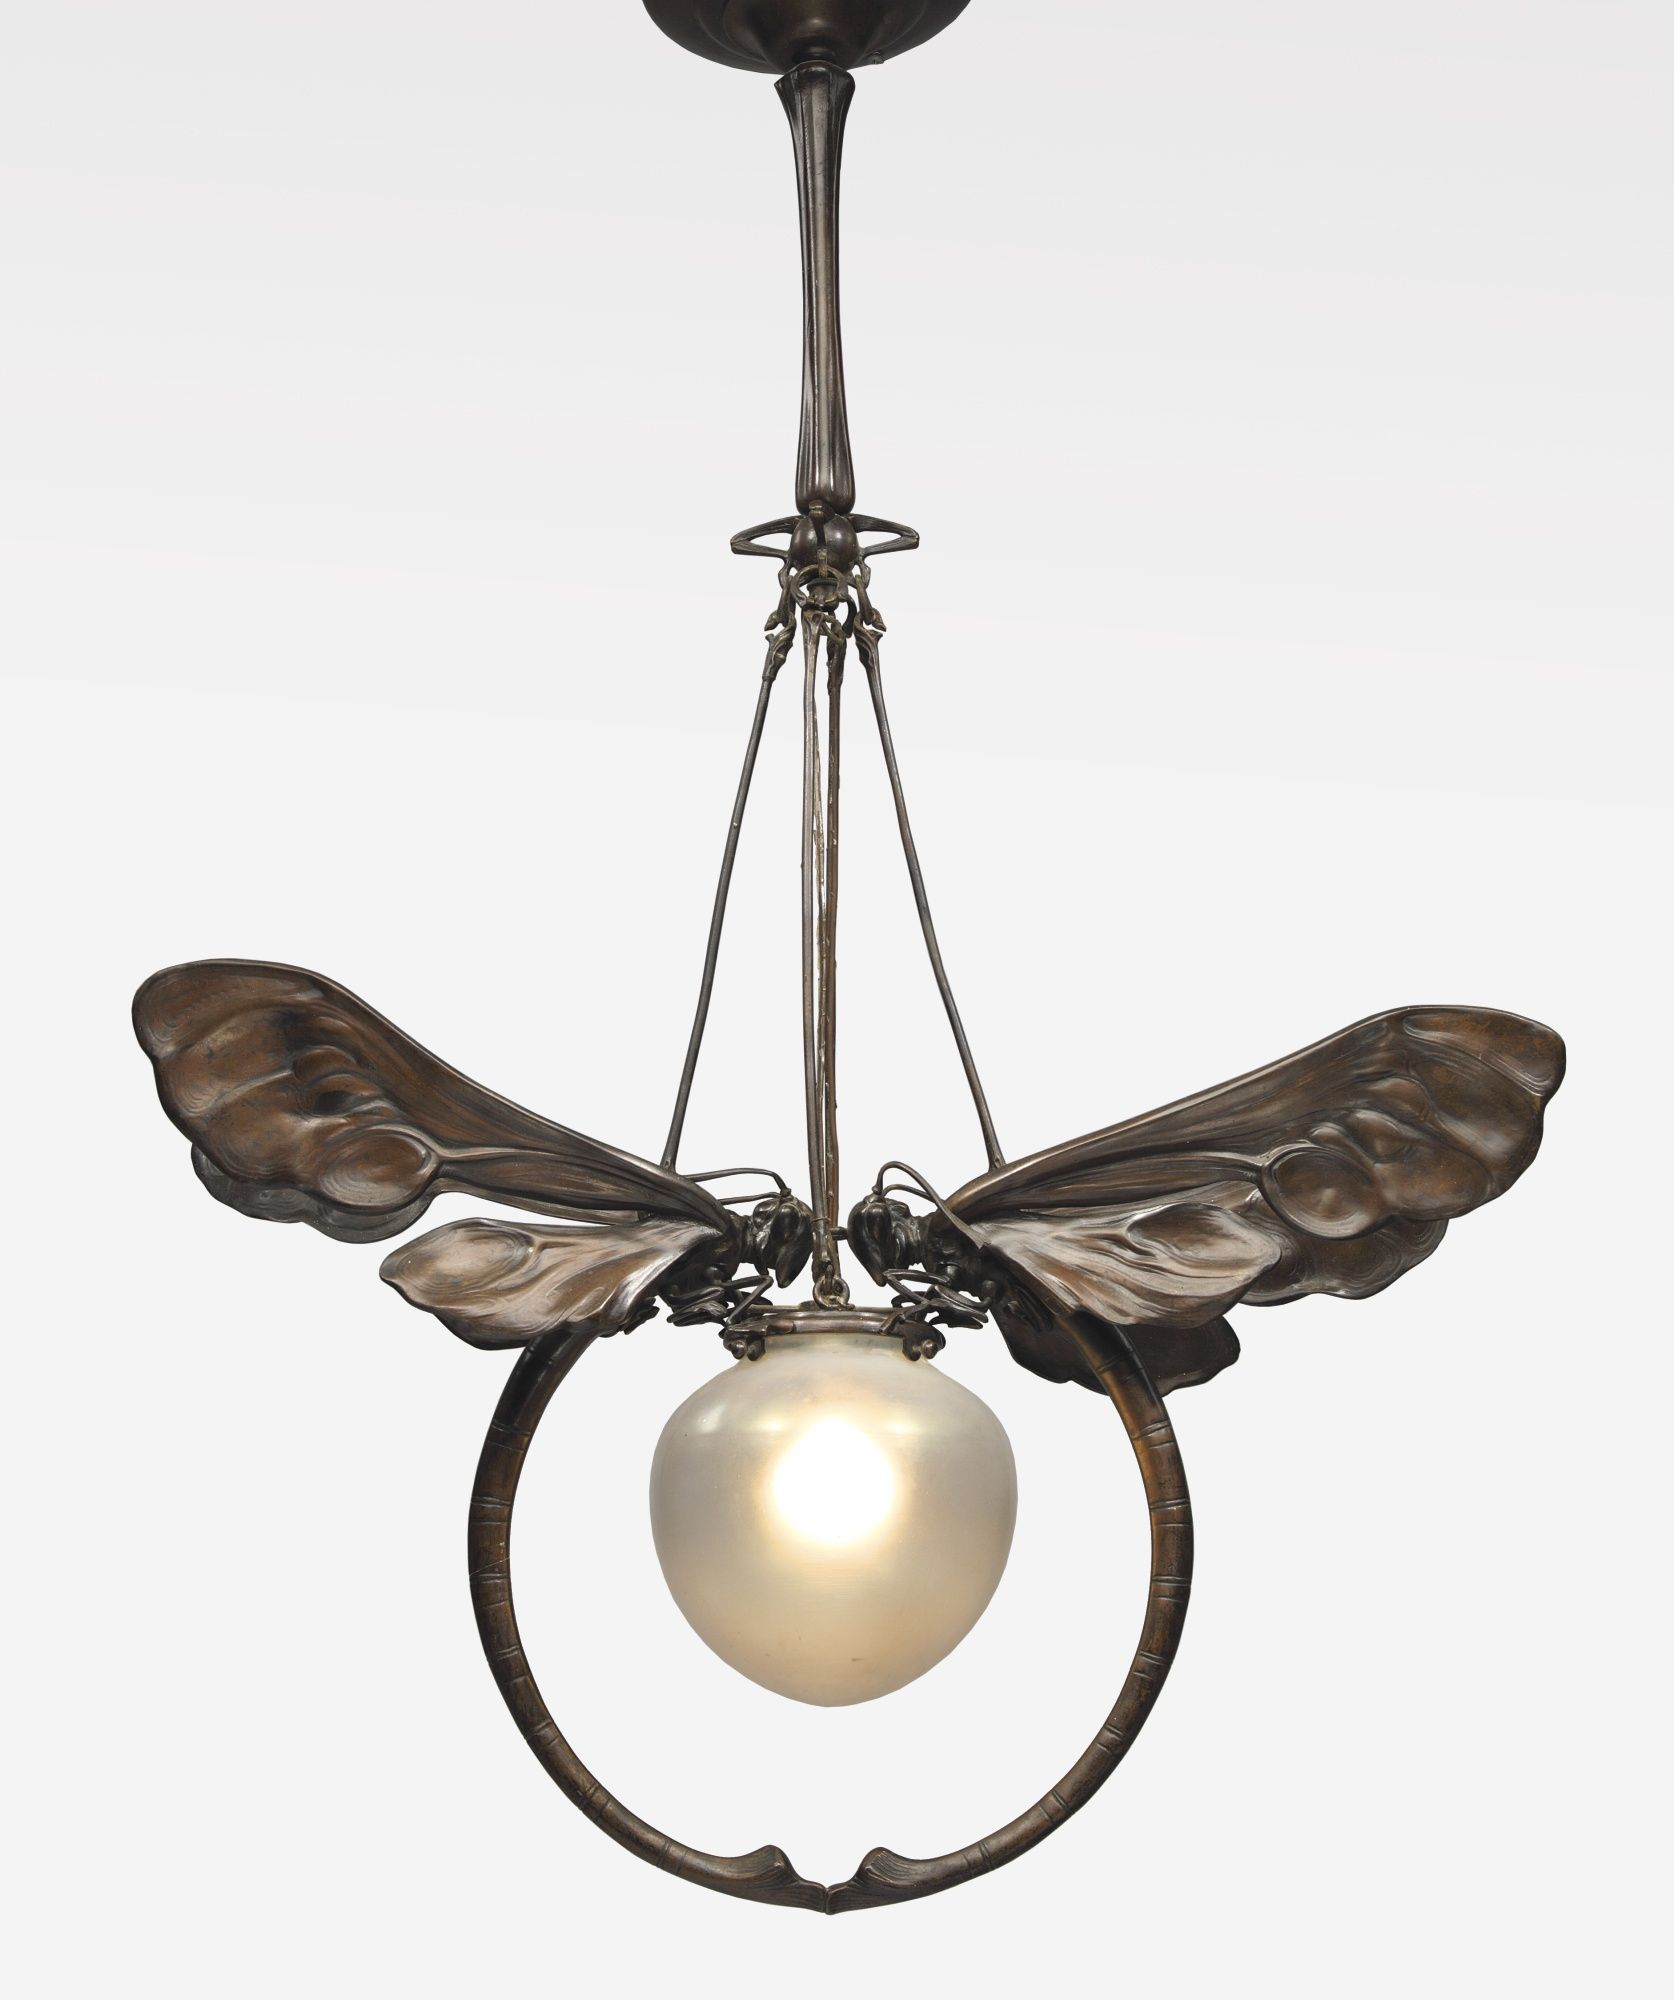 European Art Nouveau Chandelier Patinated Bronze And Glass